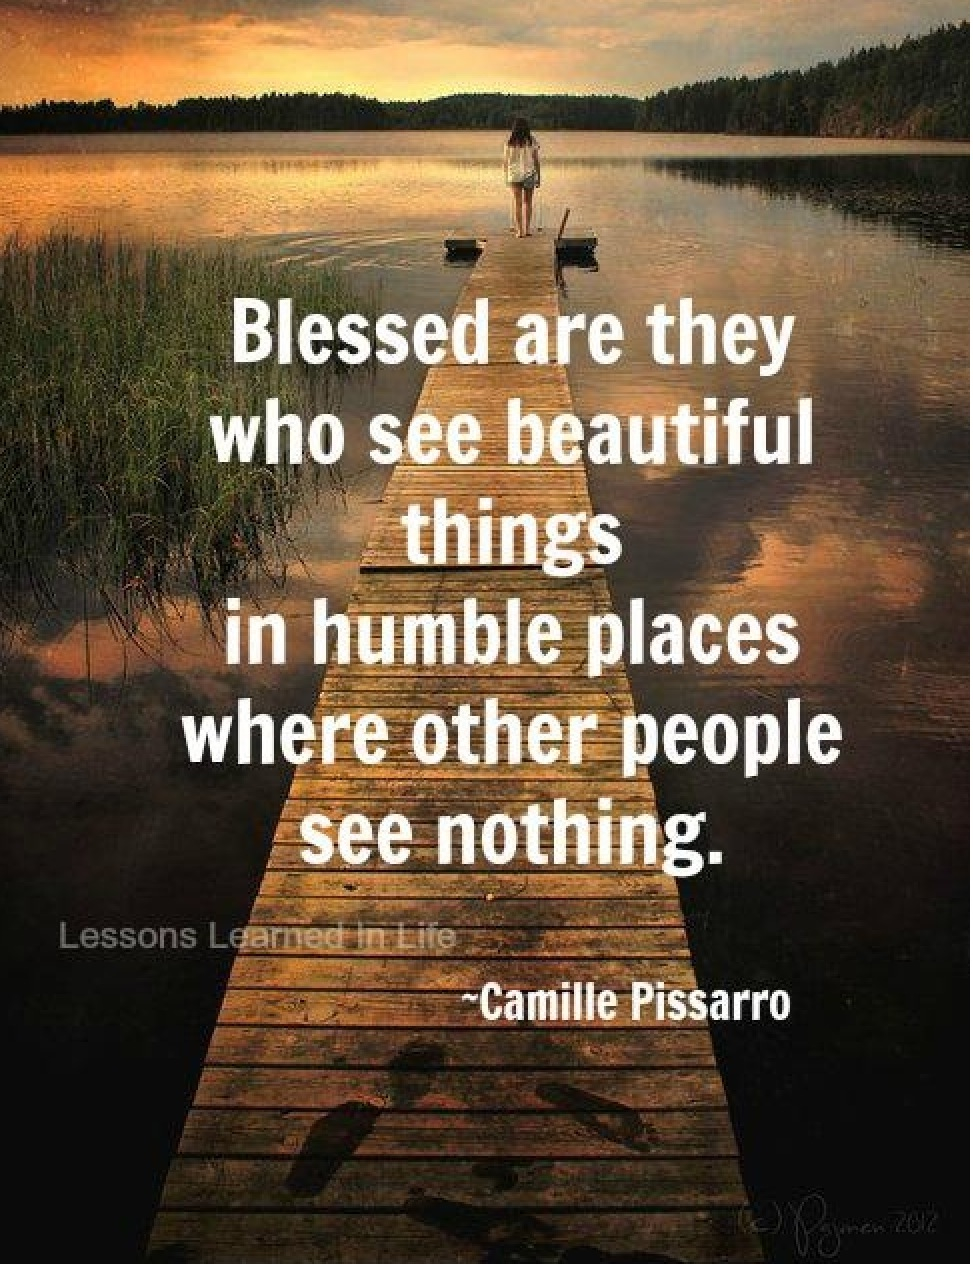 Being Humble Quotes Life QuotesGram